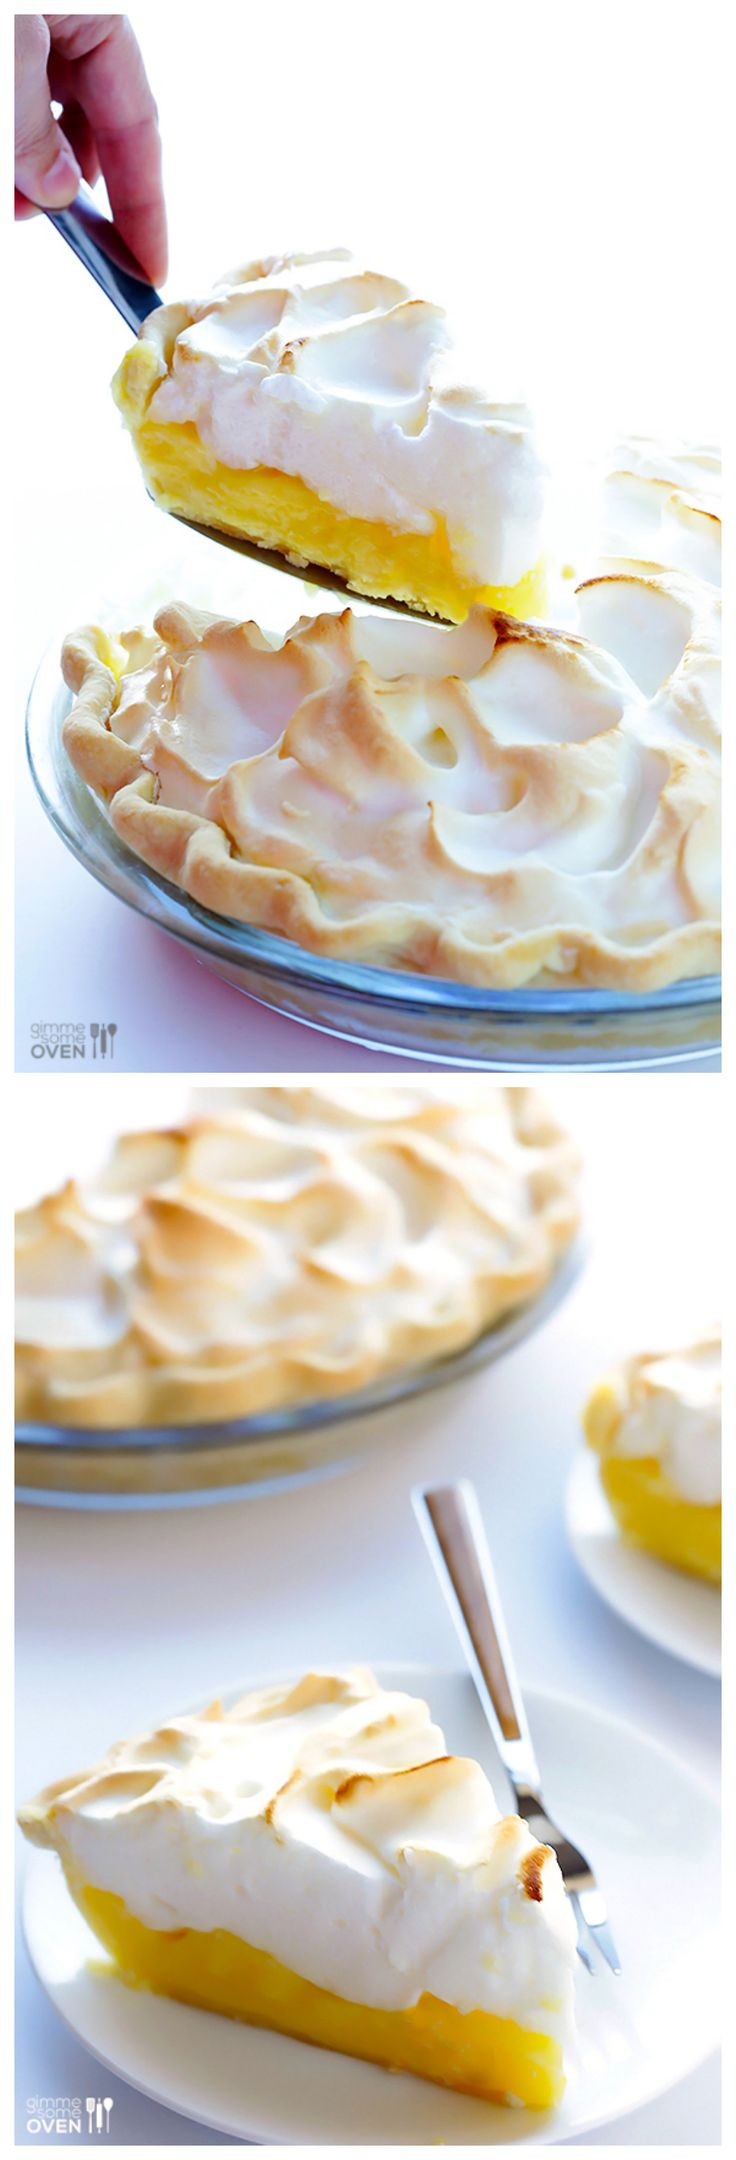 Lemon Meringue Pie -- learn how to make a fresh pie with this classic recipe. (gf pie crust)